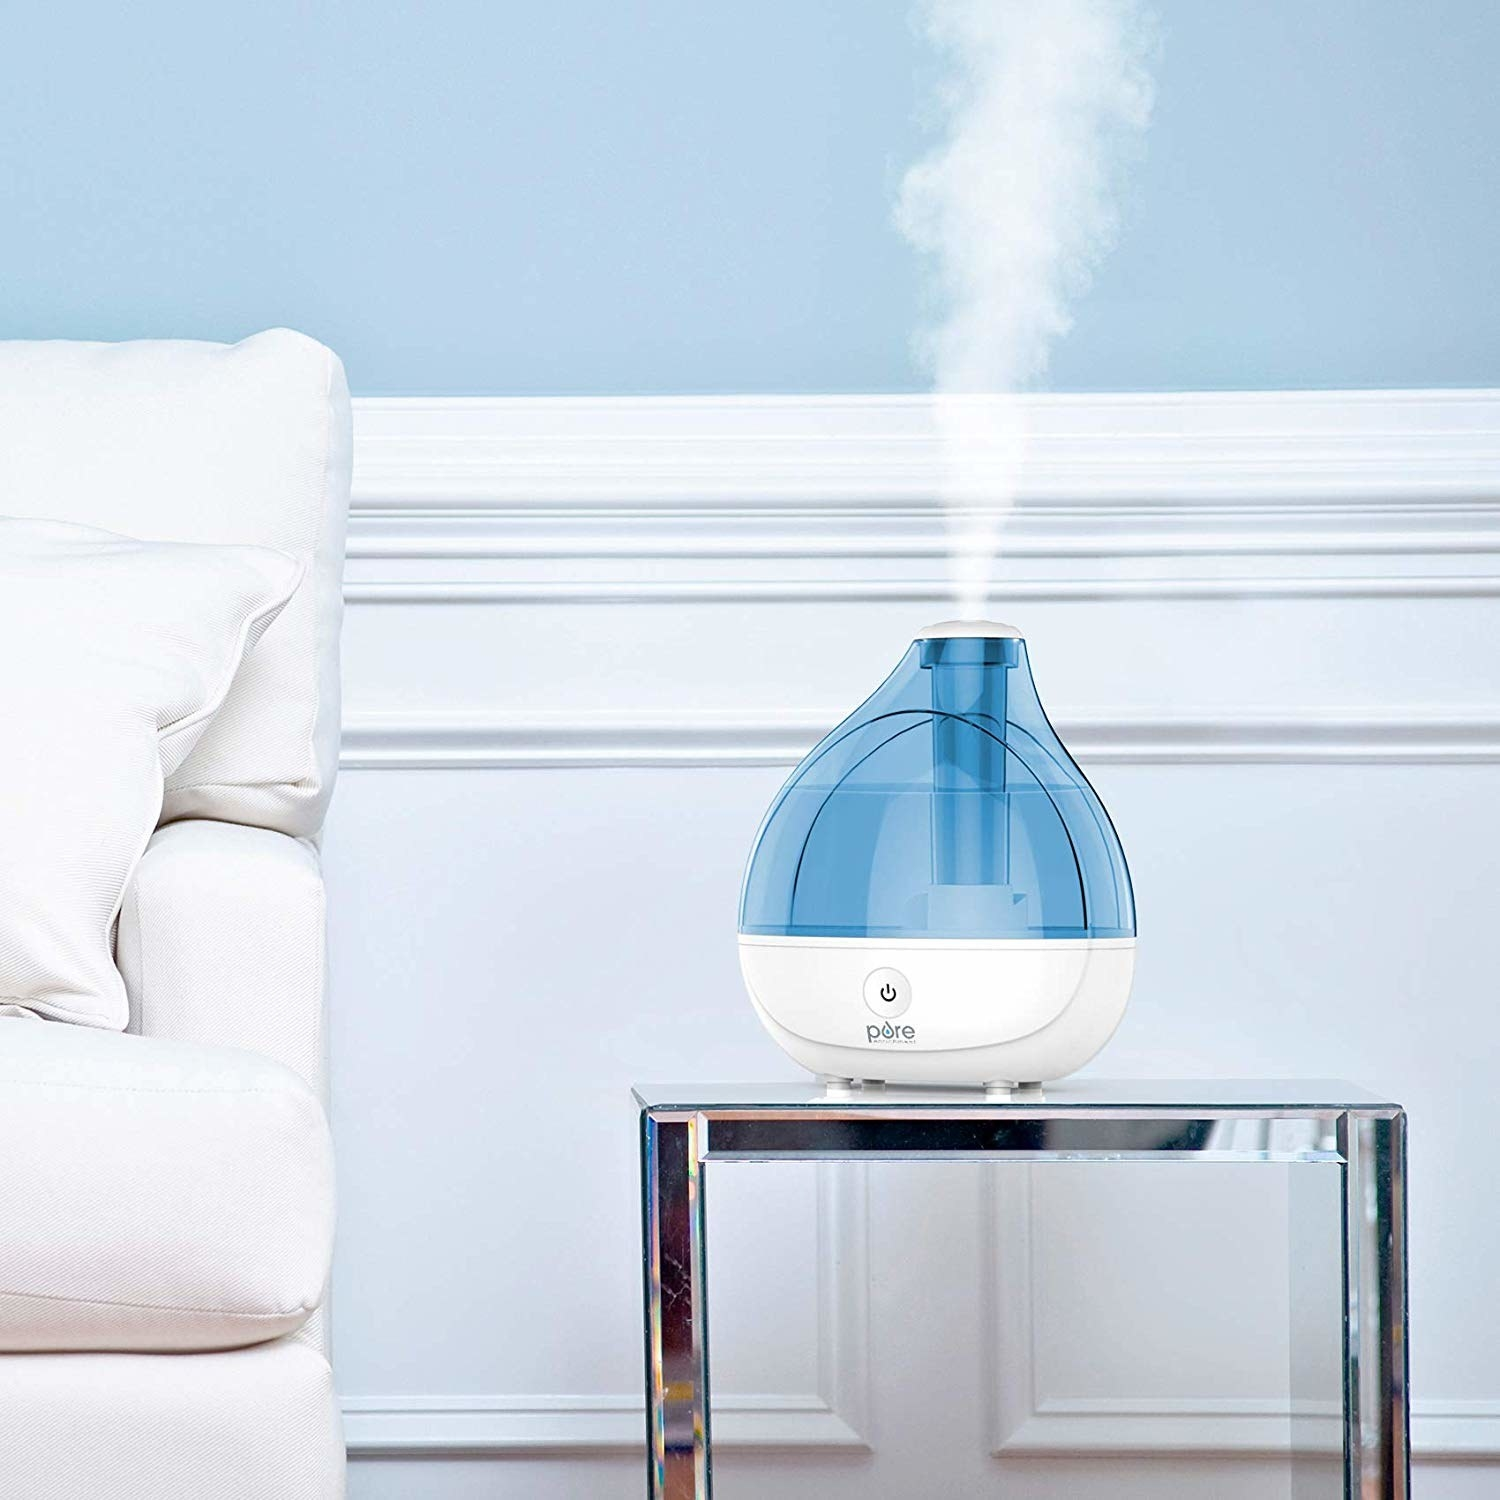 the humidifier producing a thick mist